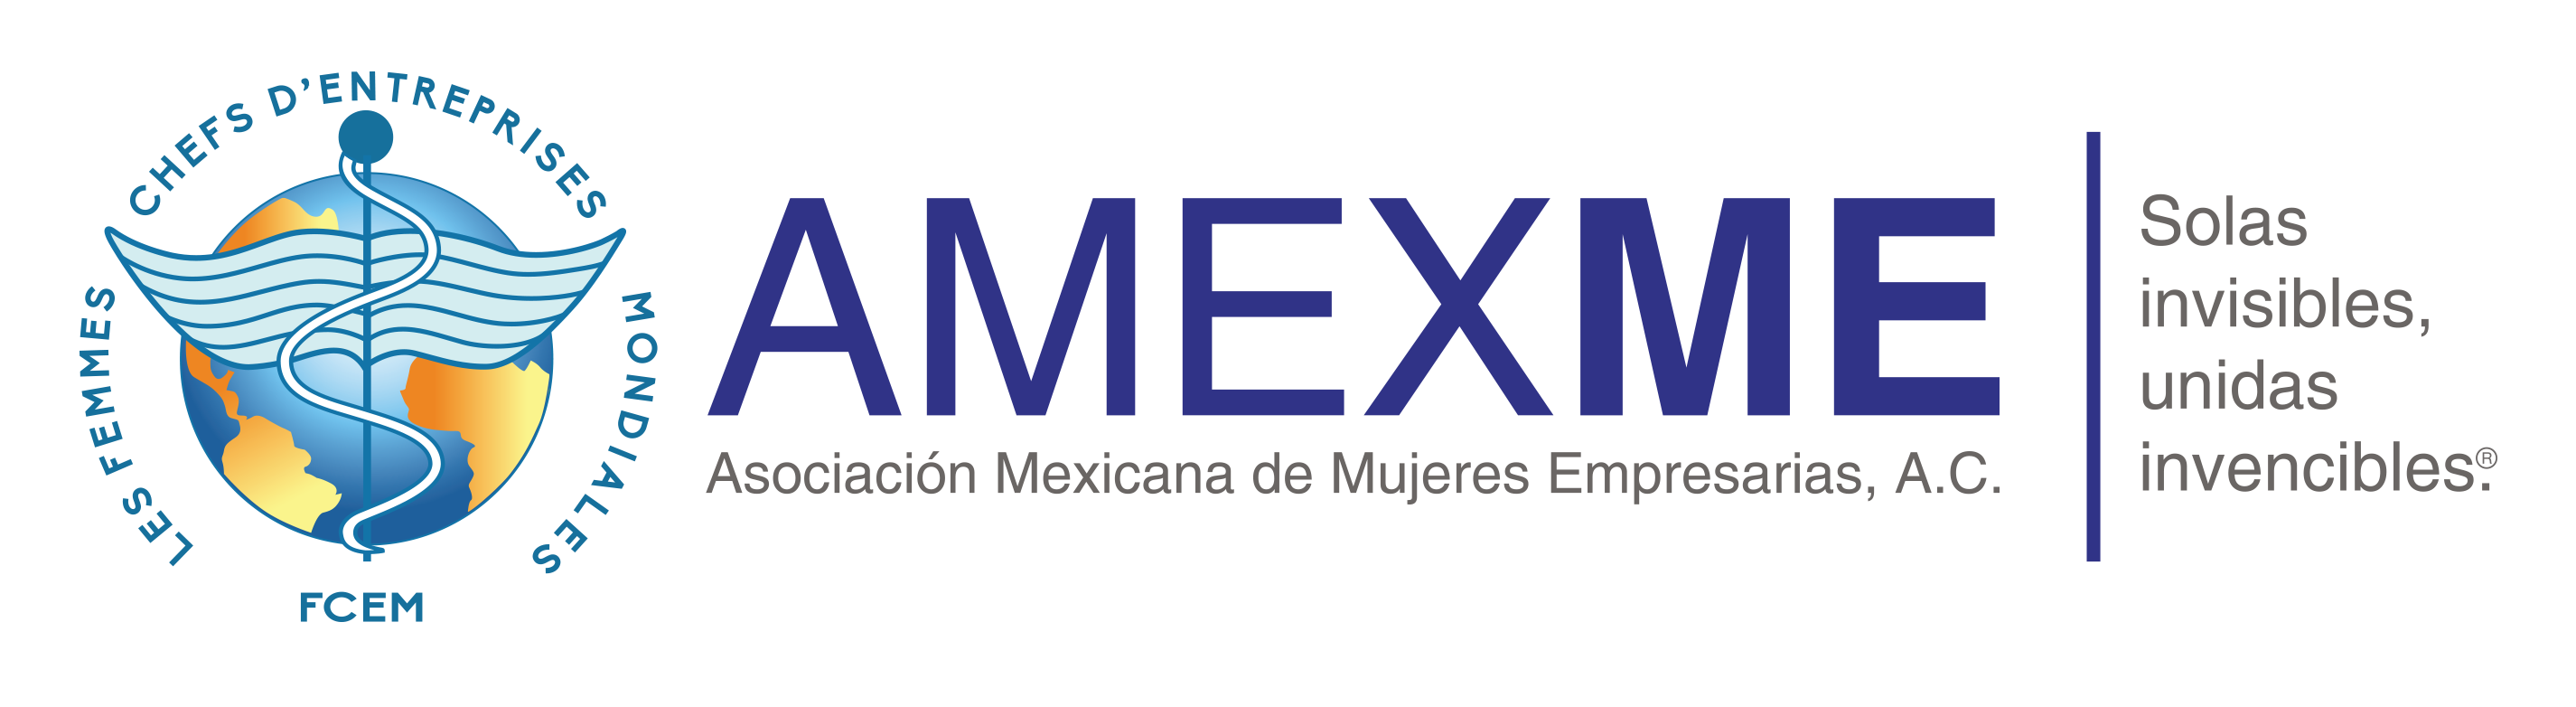 Amexme_Networking